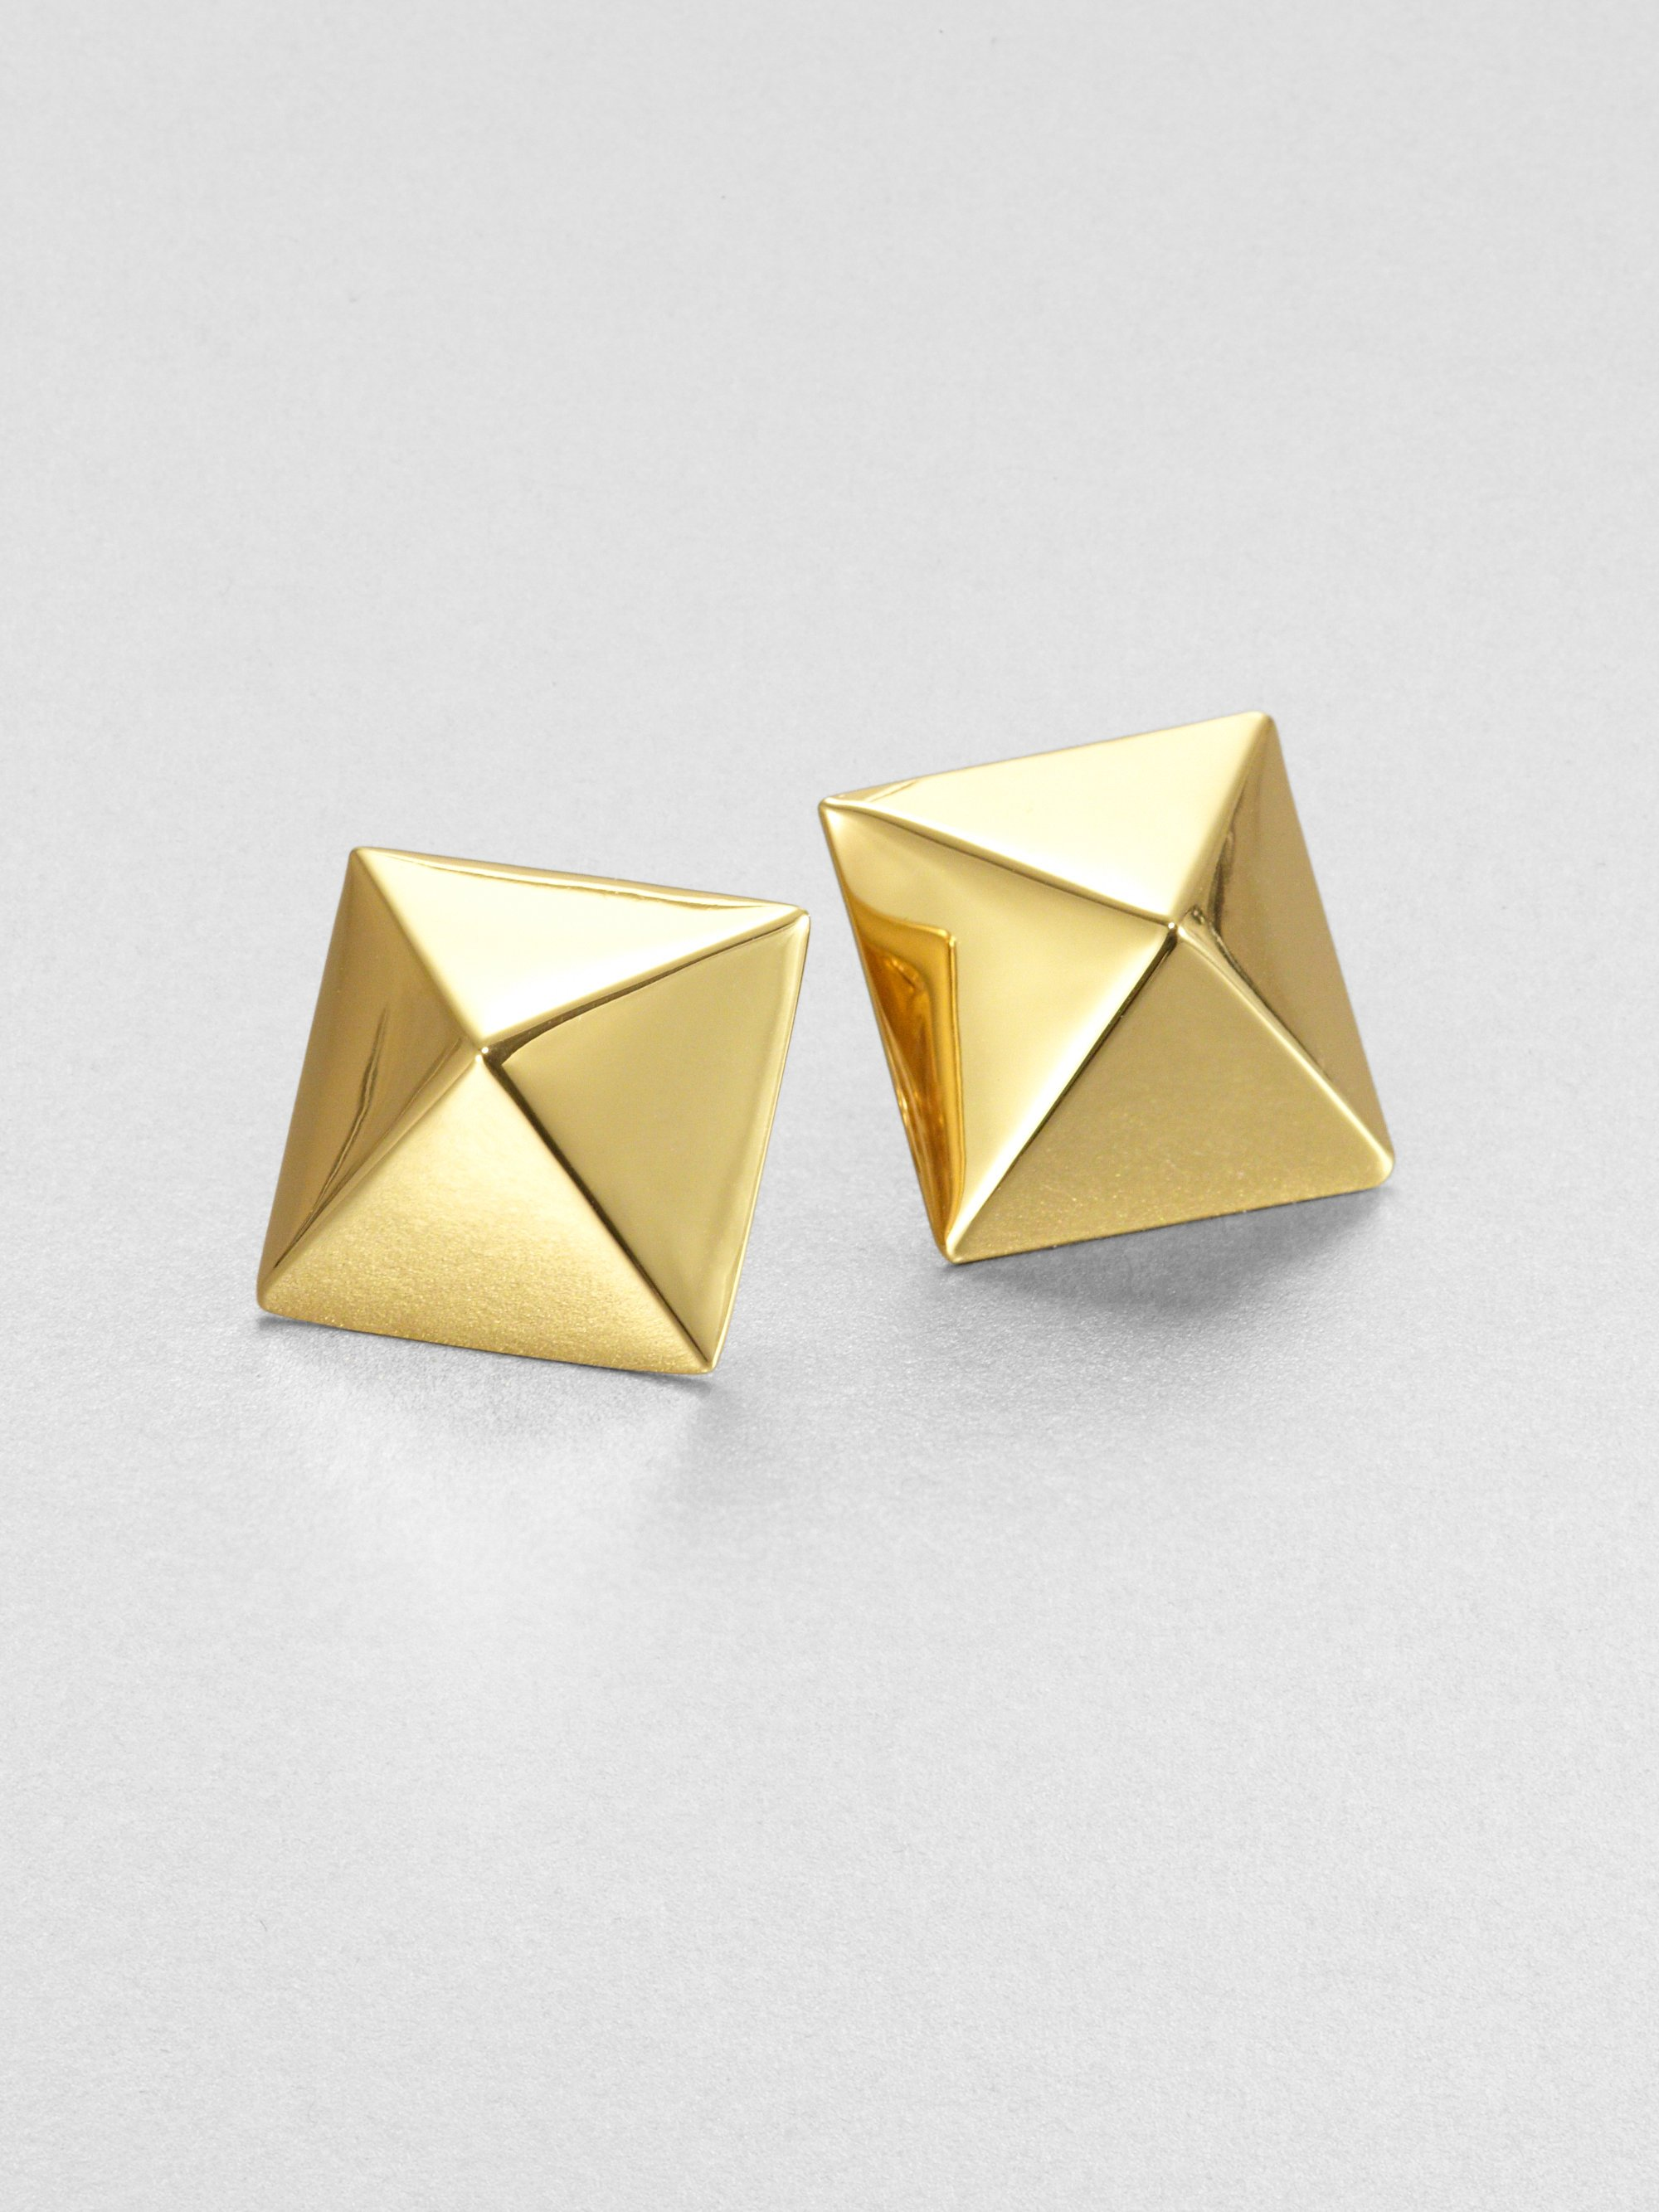 gold gallery pyramid diamond jewelry lyst stud sydney product earrings evan accented